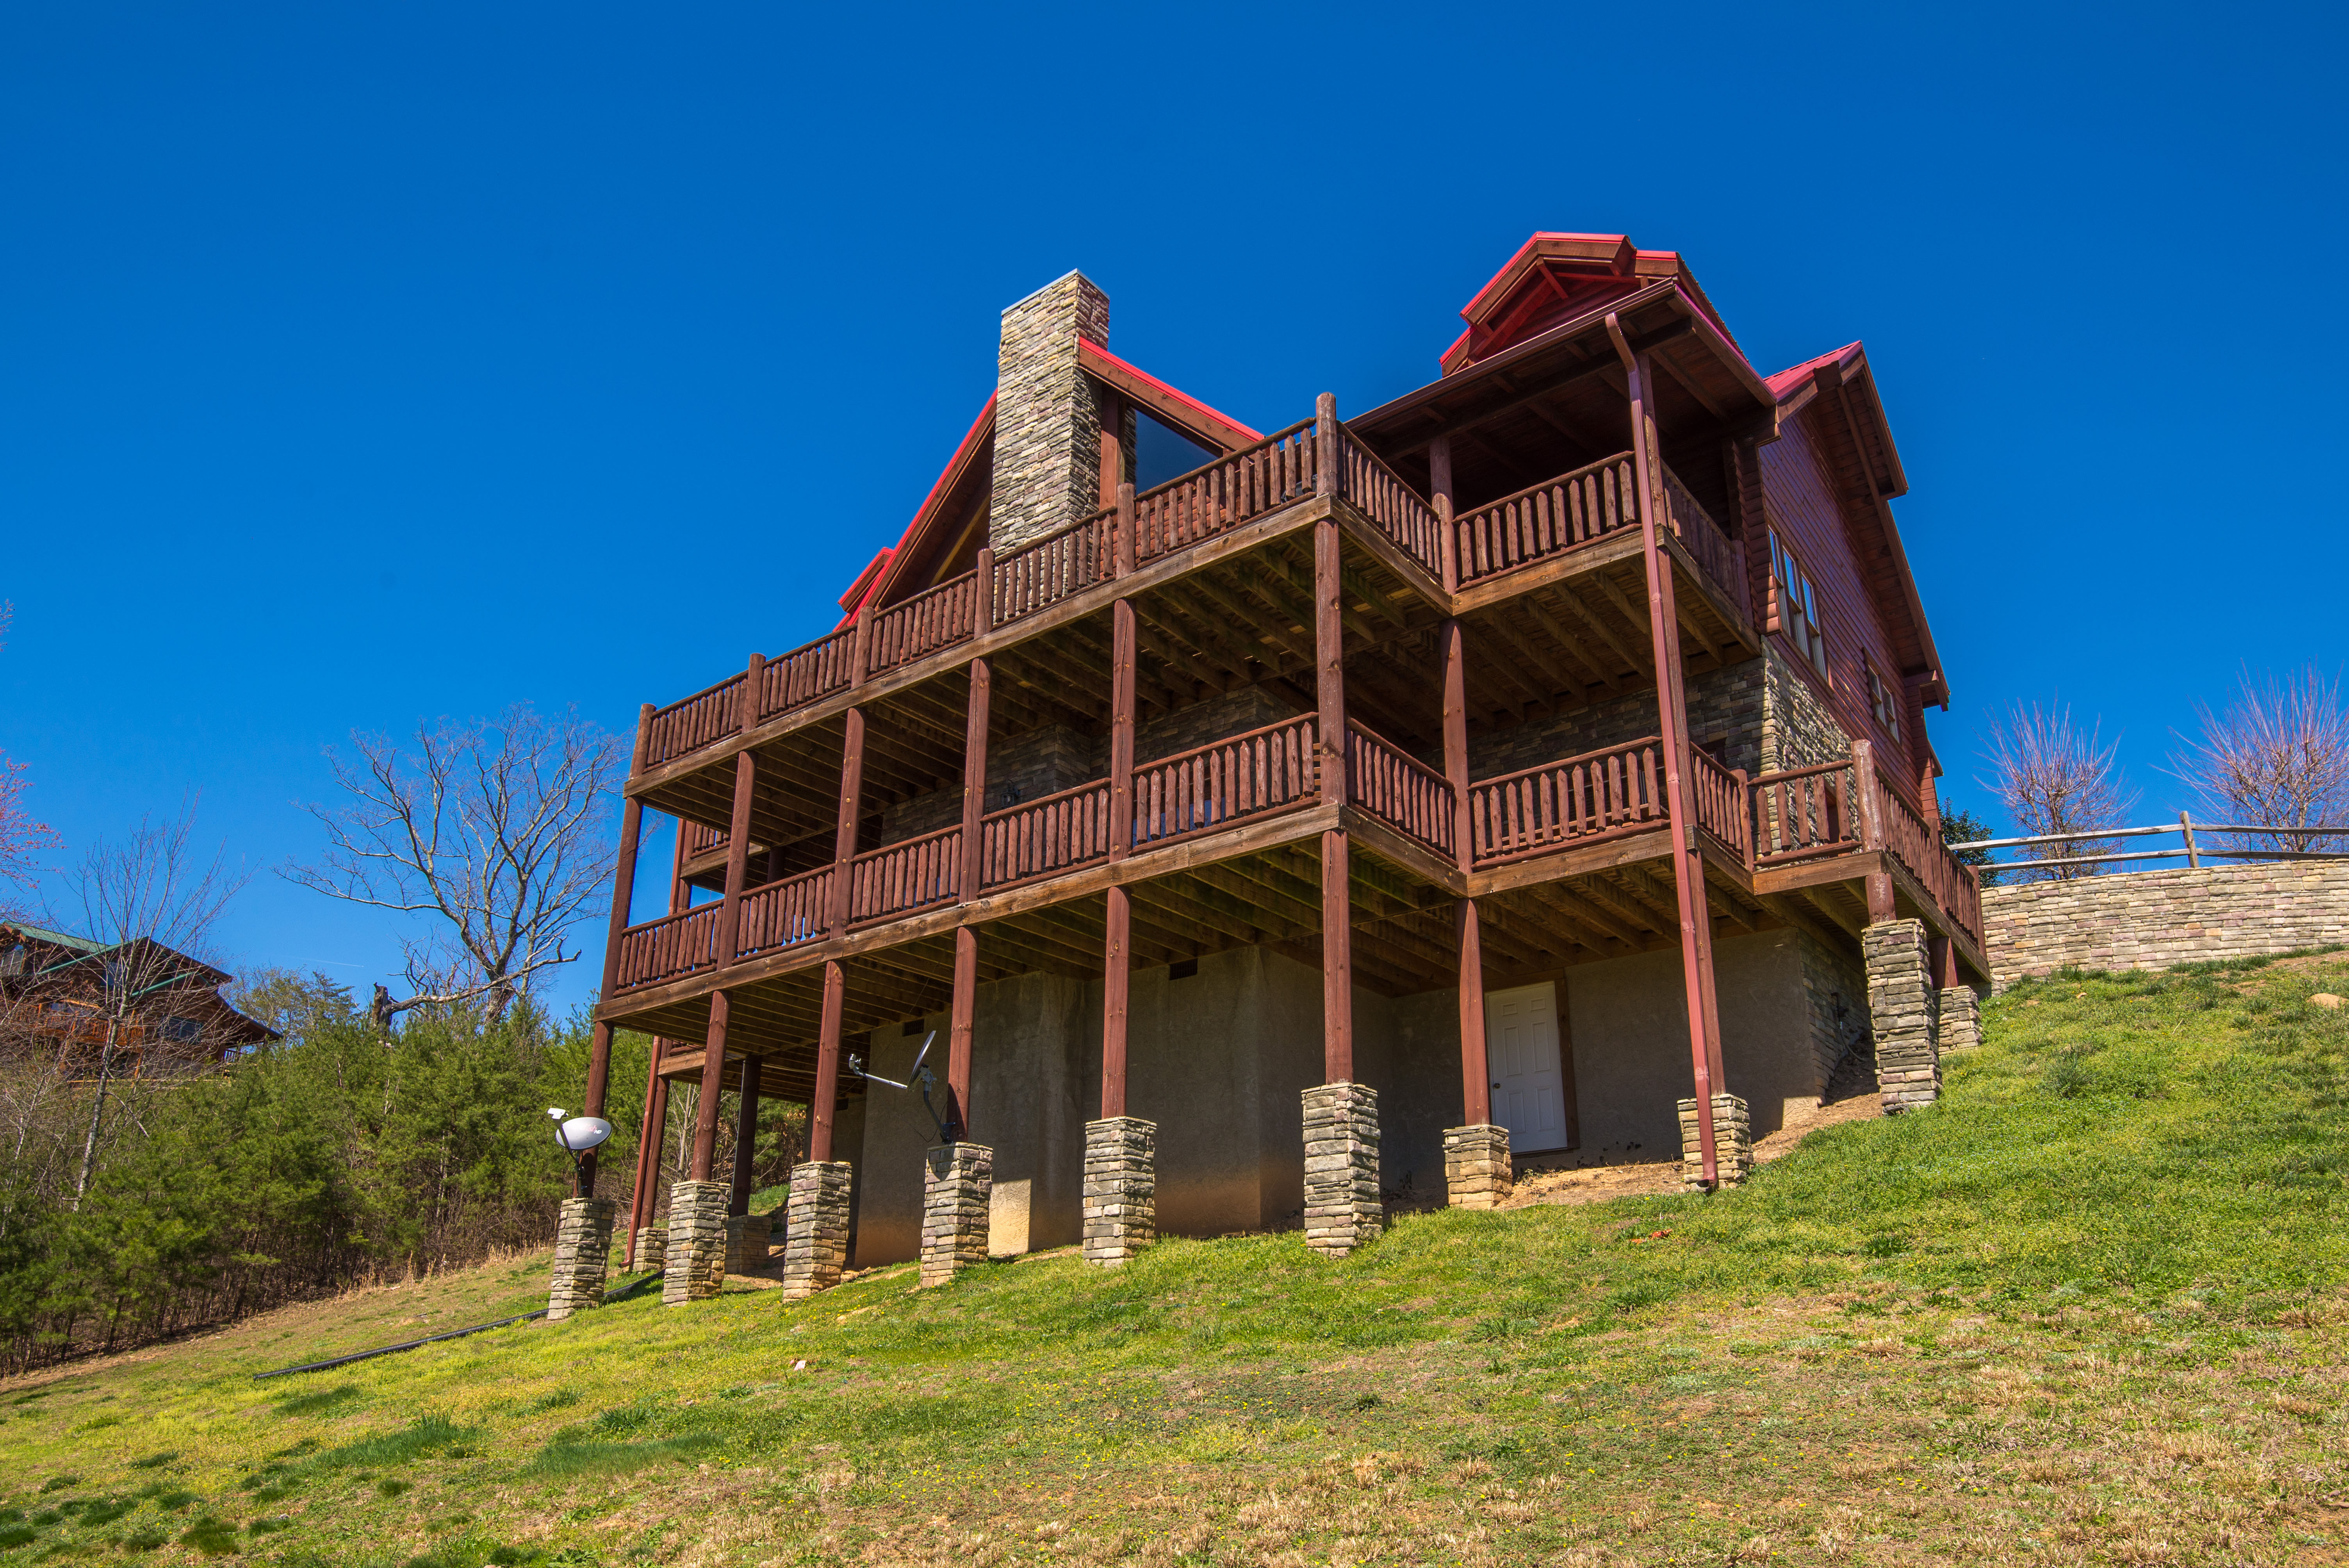 Gatlinburg 2 Bedroom Cabins A Cabin Of Dreams Luxury Chalet In Pigeon Forge